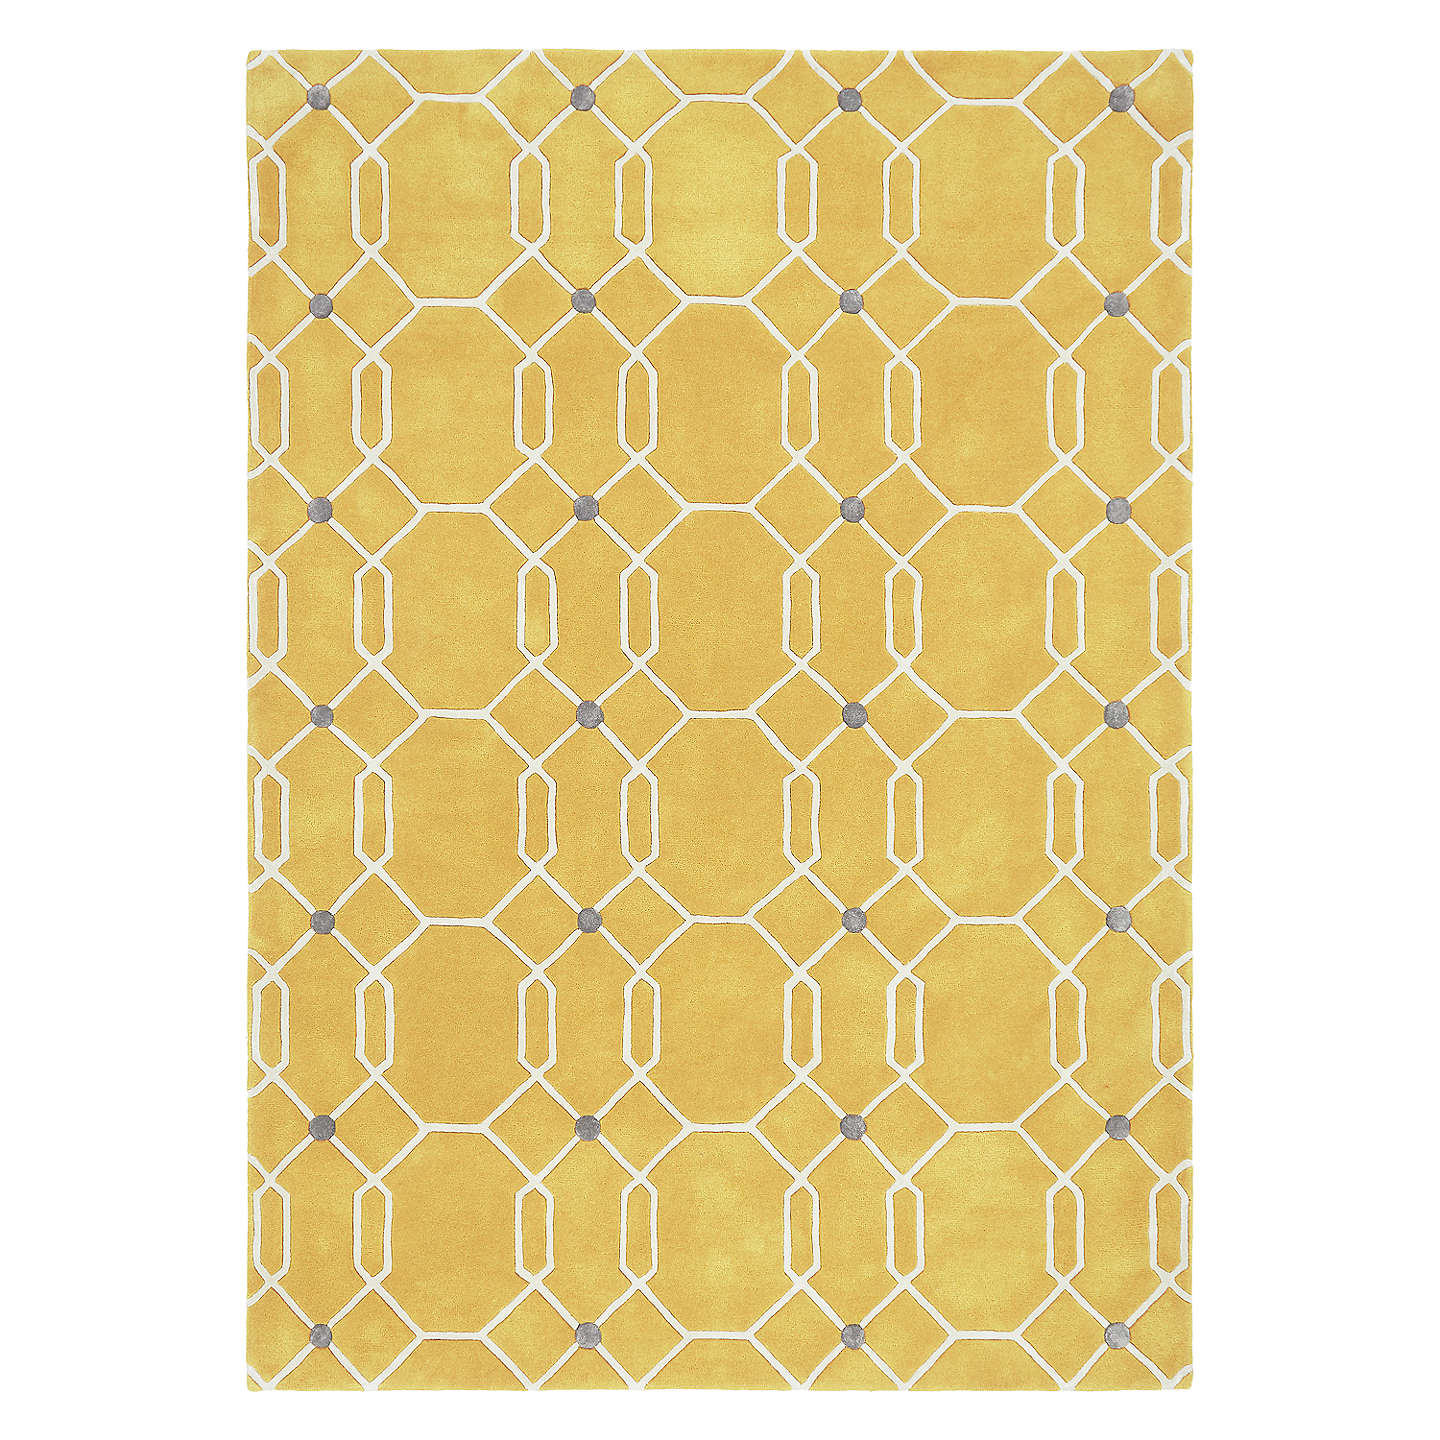 laptop nuloom custom shag square cool and neat modern area moroccan me rugged stores rug multicolor navy on kitchen teal near cream red rugs trellis geometric dark